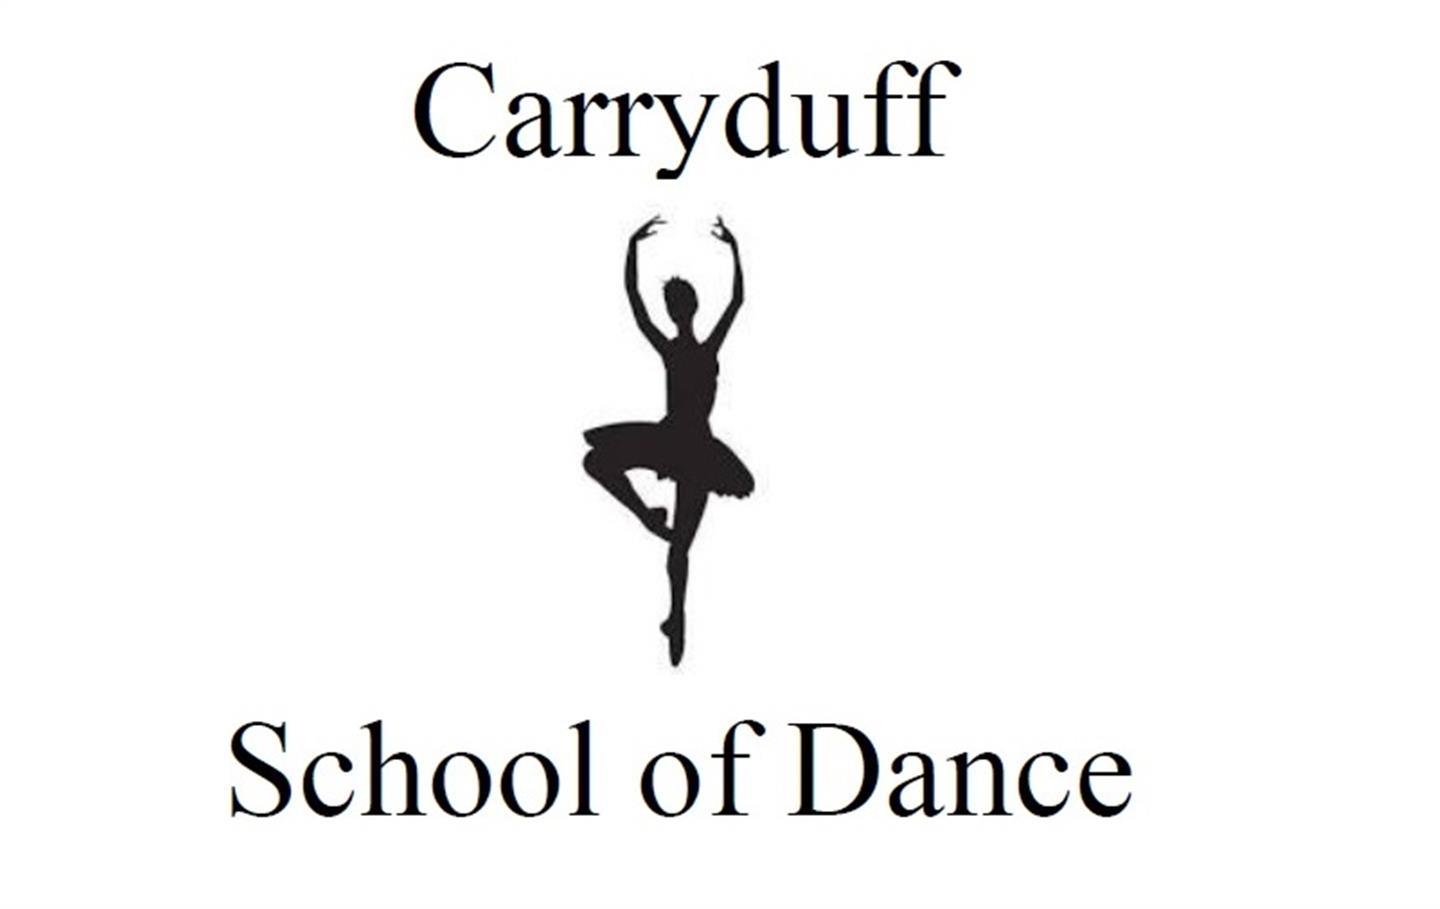 Carryduff School of Dance - Dancing Display